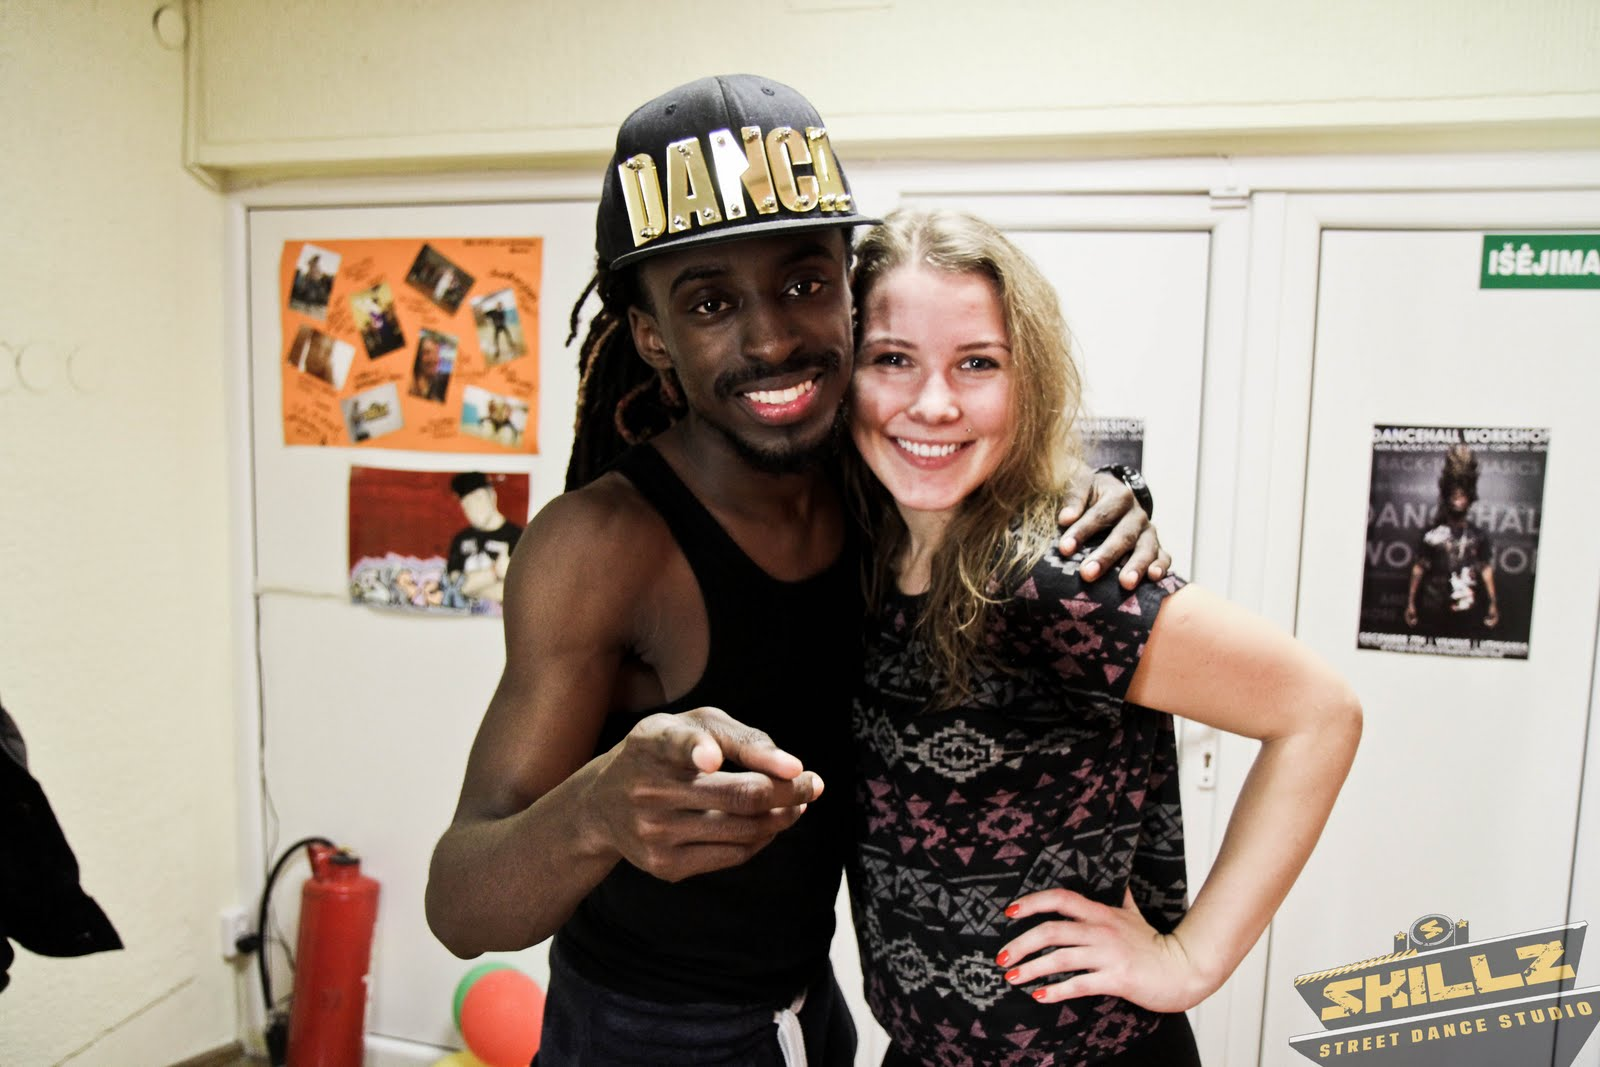 Dancehall workshop with Black Di Danca (USA, New Y - IMG_6781.jpg